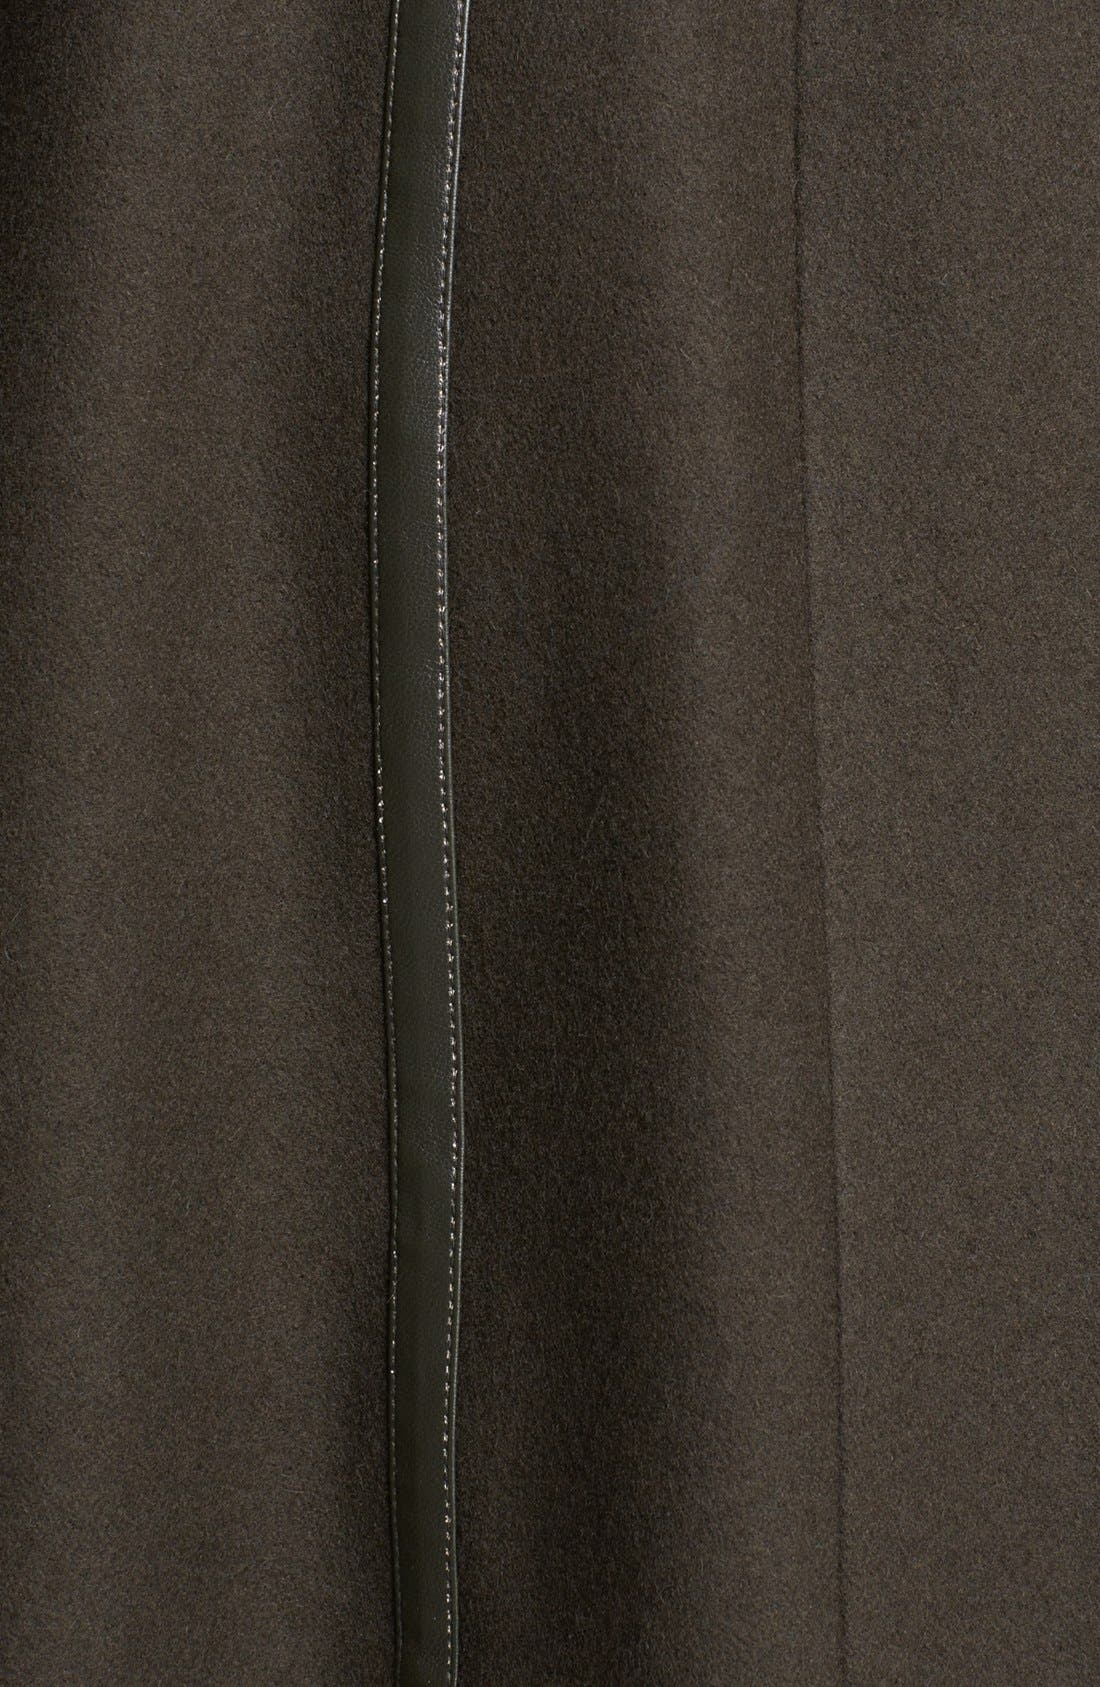 Alternate Image 3  - Vince Camuto Leather Trim Belted Wool Blend Coat